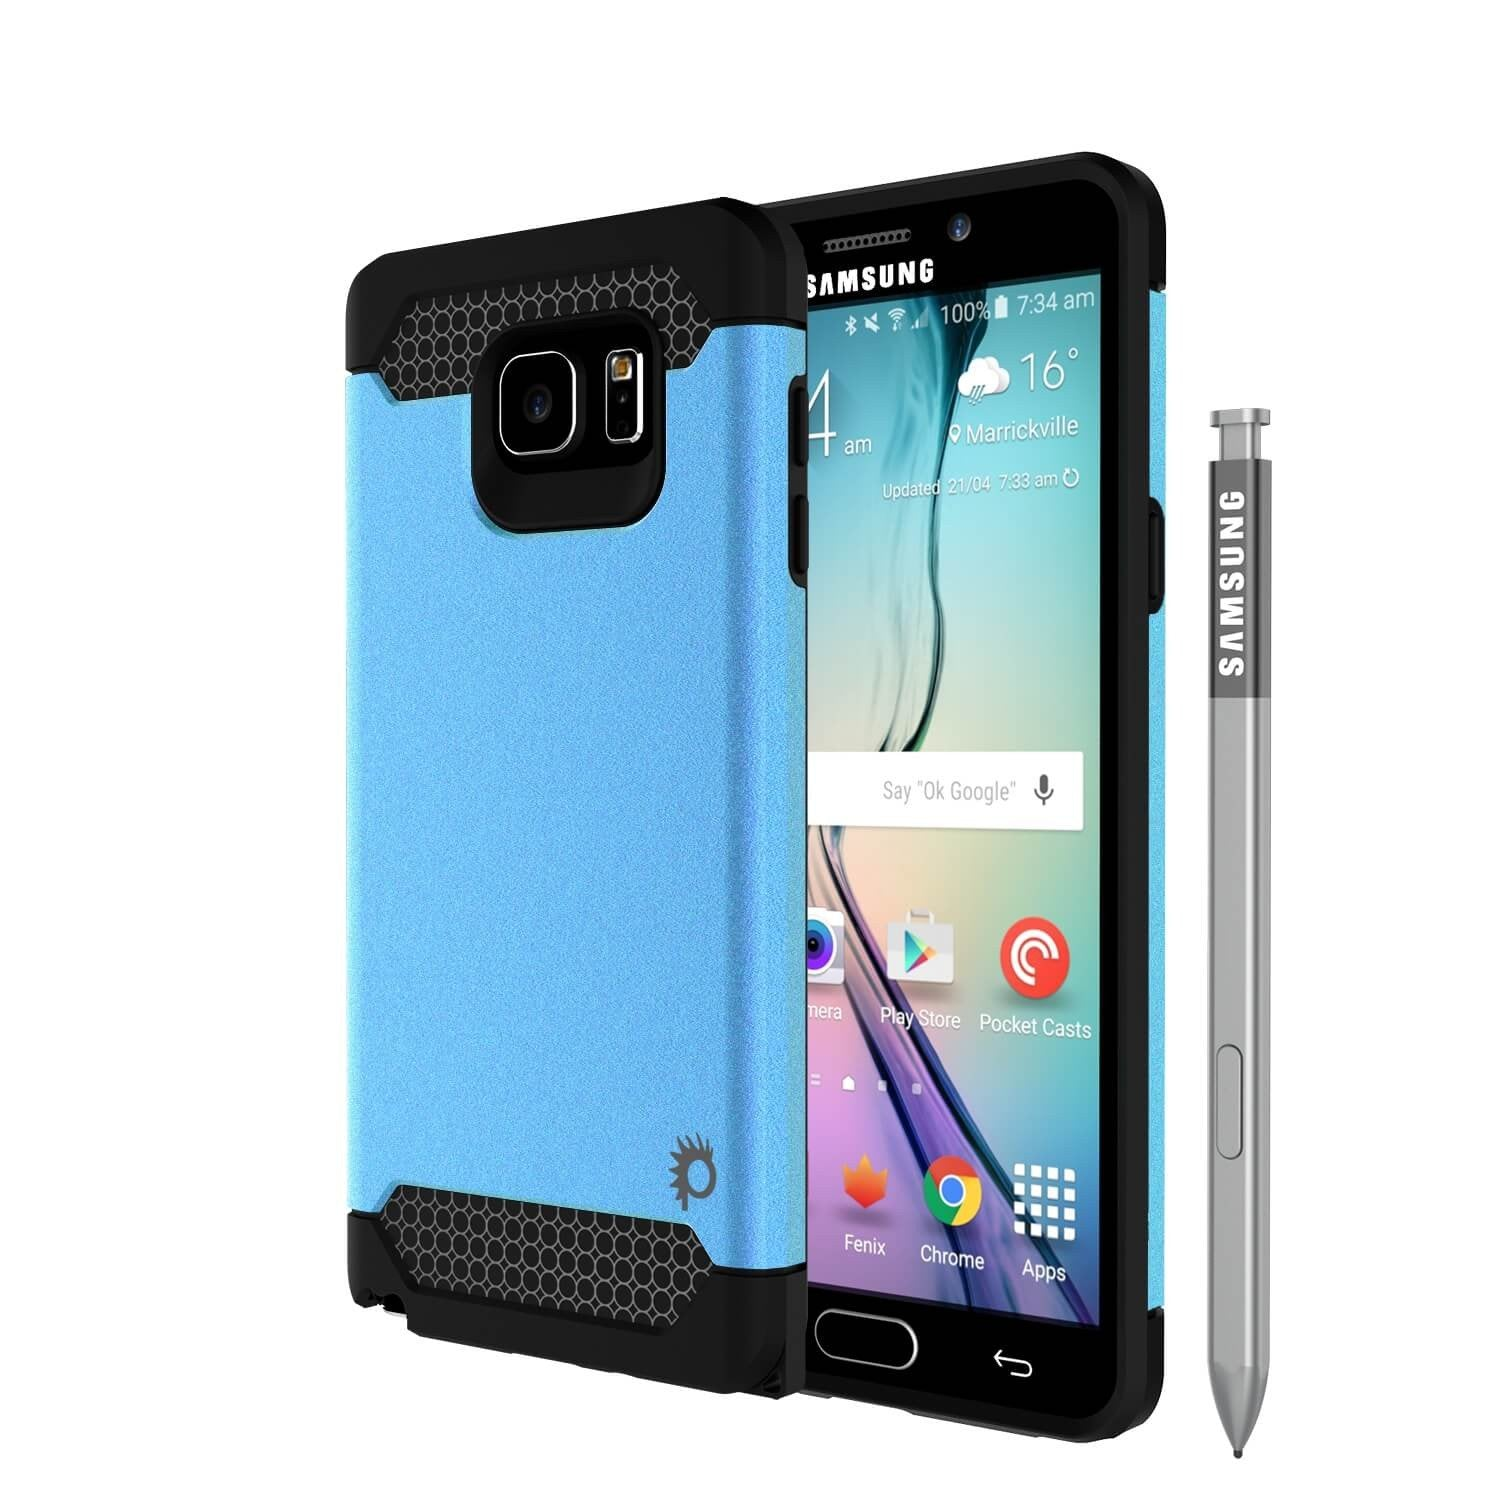 Galaxy Note 5 Case PunkCase Galactic Teal Series Slim Armor Soft Cover Case w/ Tempered Glass - PunkCase NZ